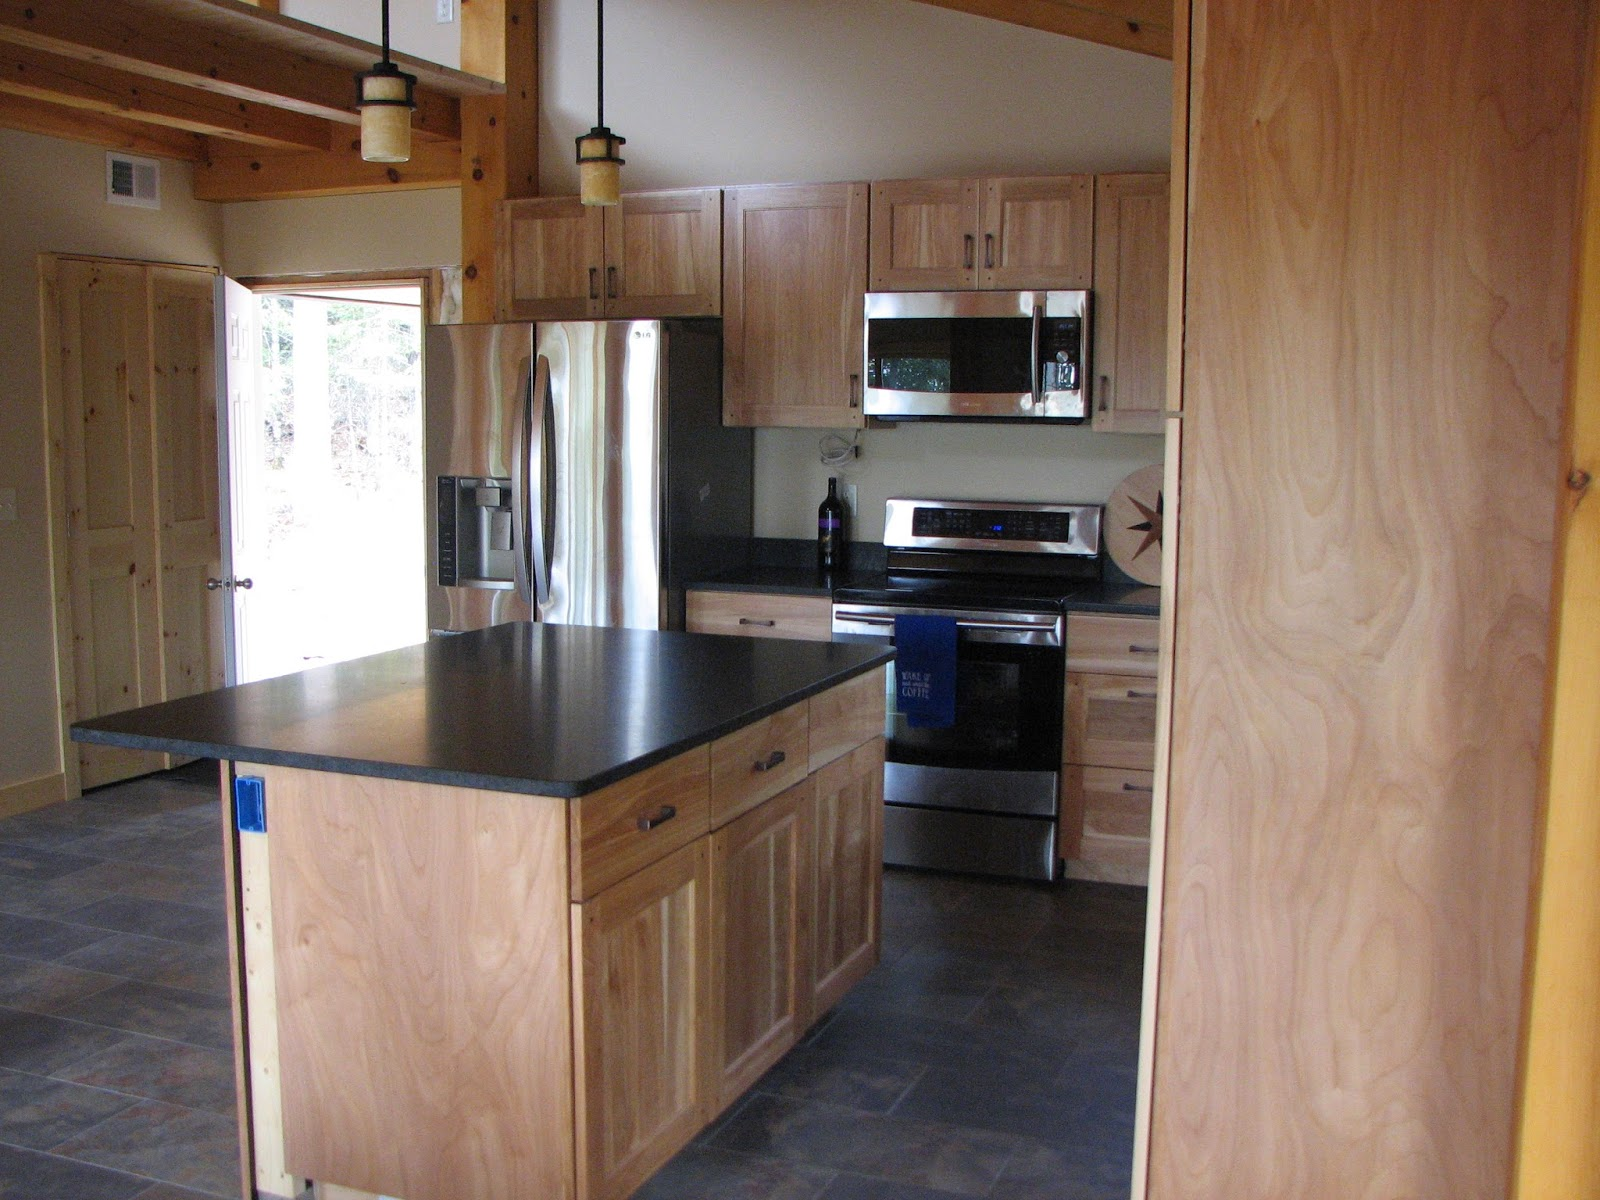 honed, mesabi, black, granite, red birch, cabinets, timber frame, huisman